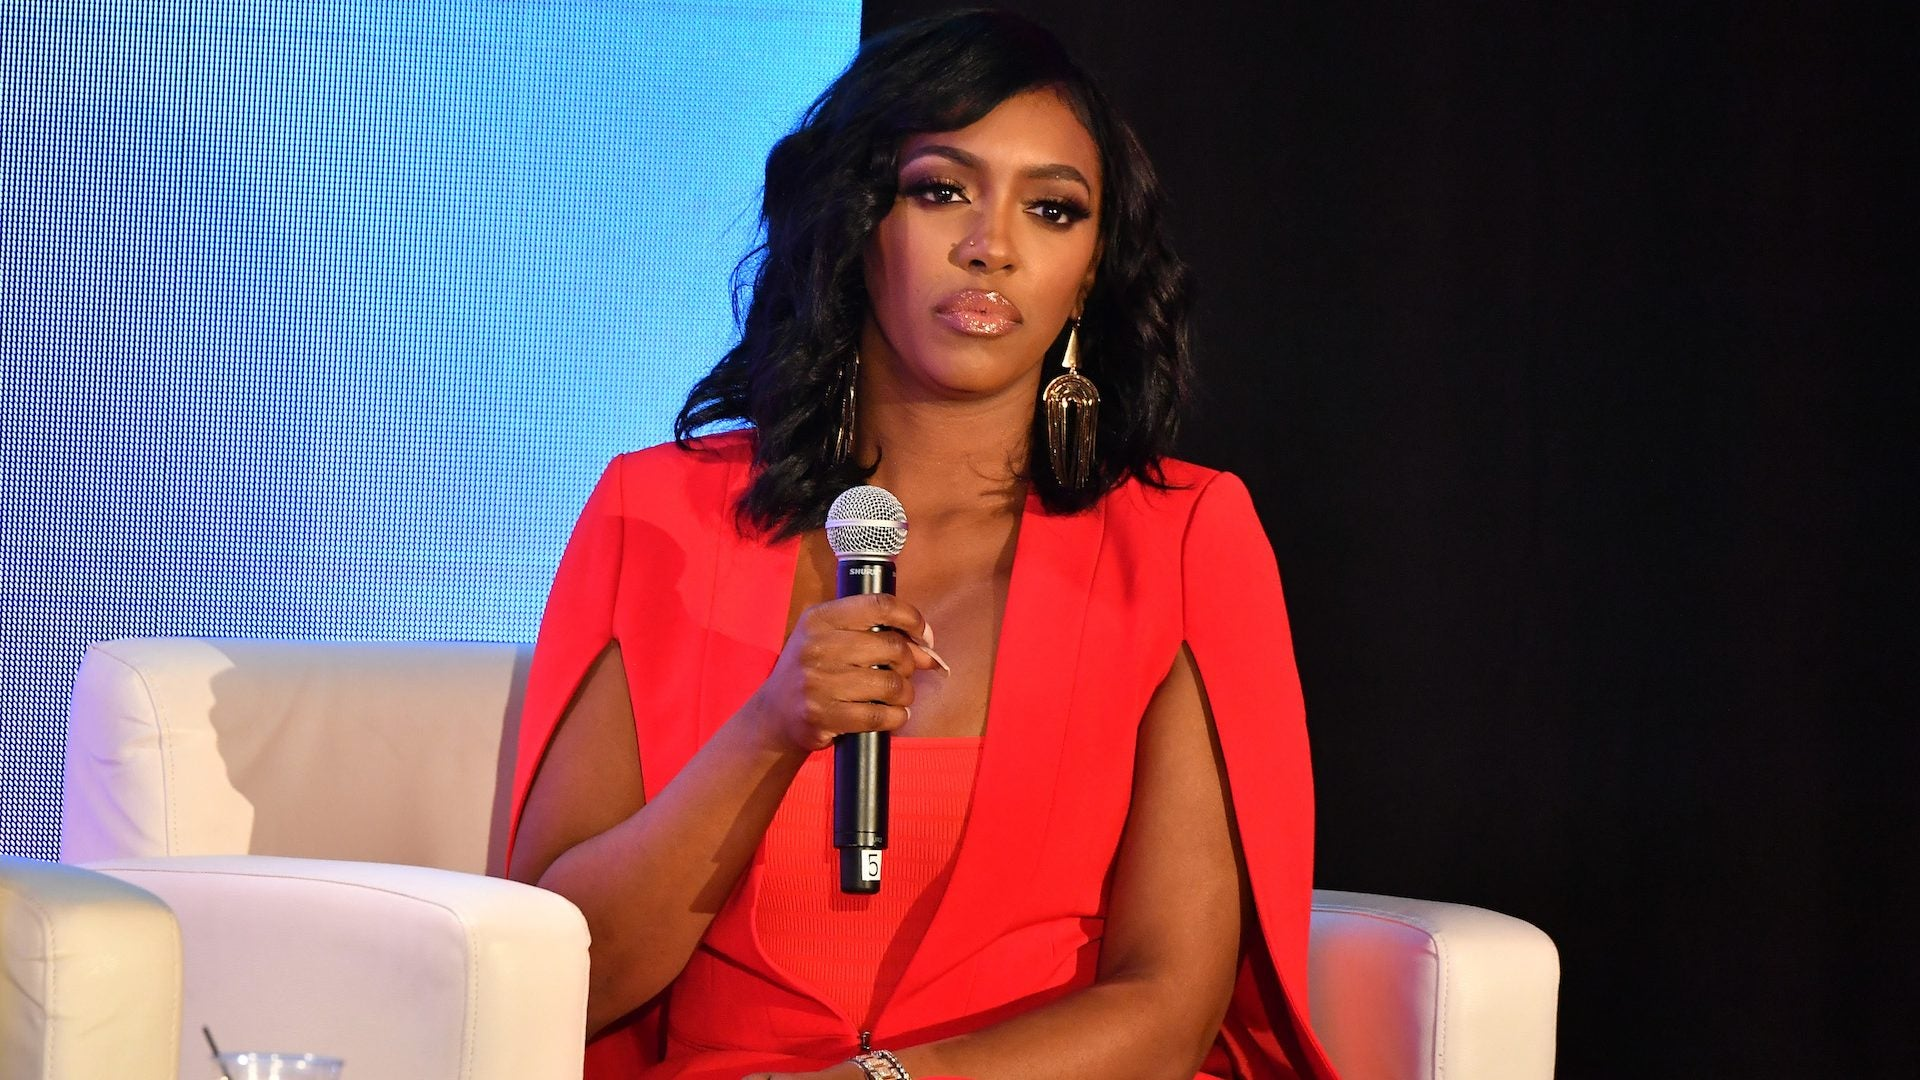 Porsha Williams Shares An Outrageous Video - Fans Are Going Mad After Seeing The Viral Clip!